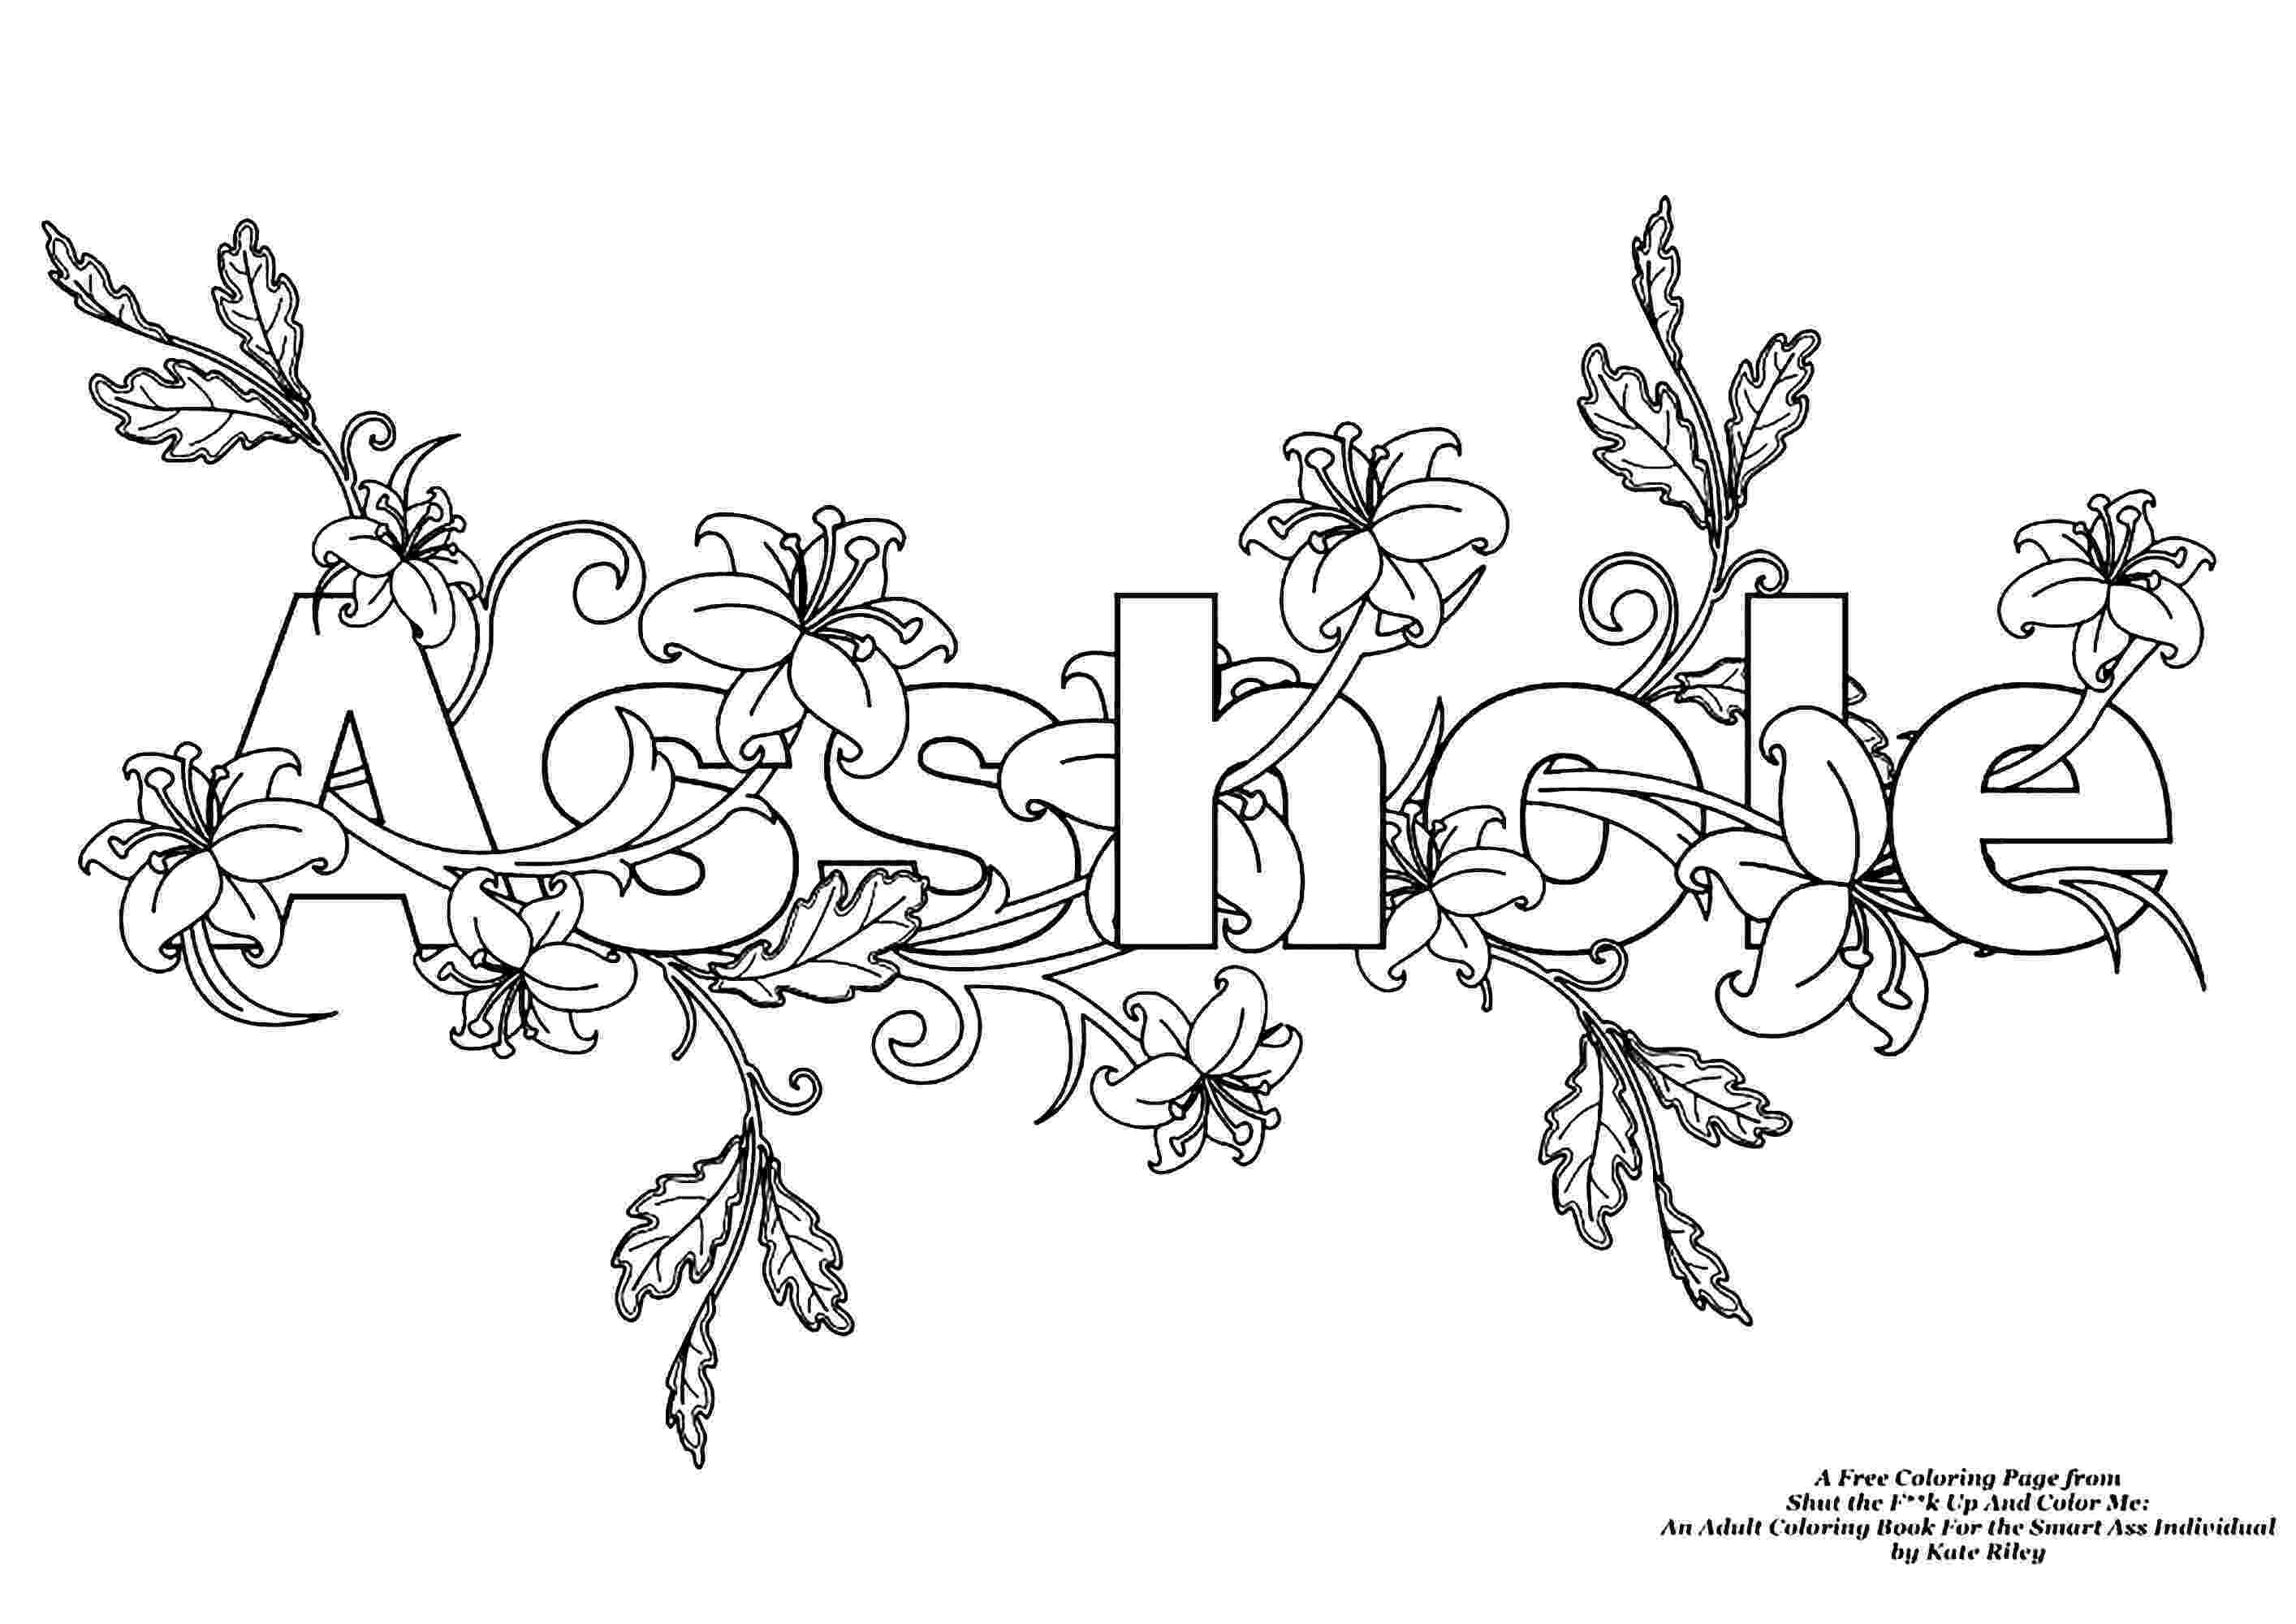 free online coloring pages for adults swear words swear word coloring pages at getcoloringscom free words pages coloring swear free for adults online